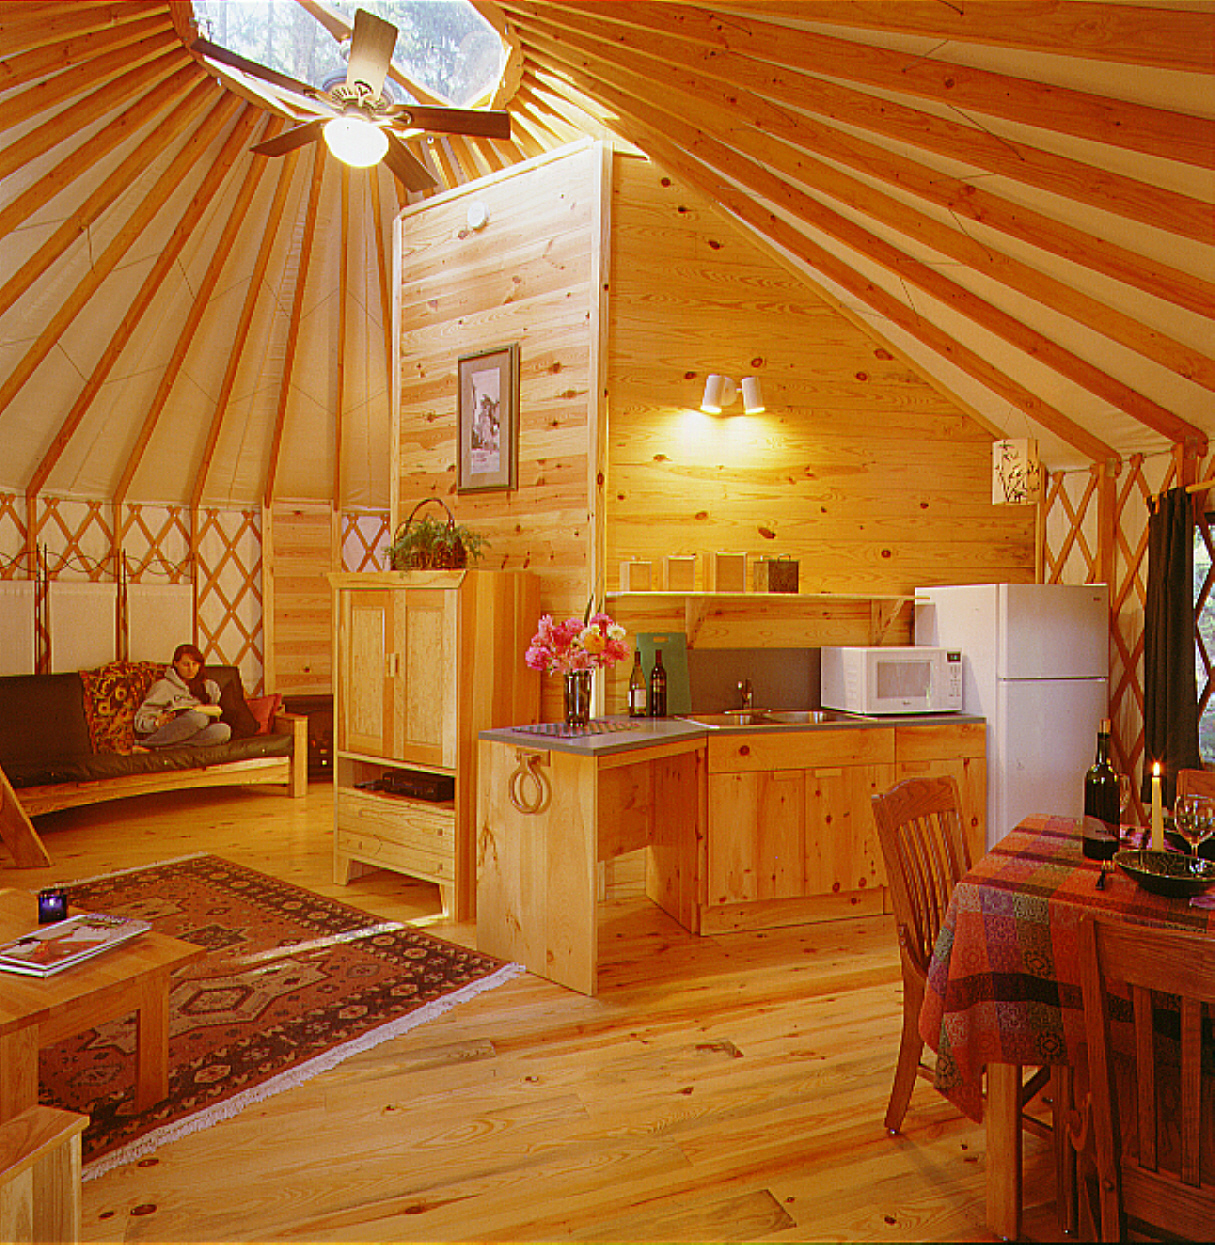 Little yurt in the woods Pictures of new homes interior